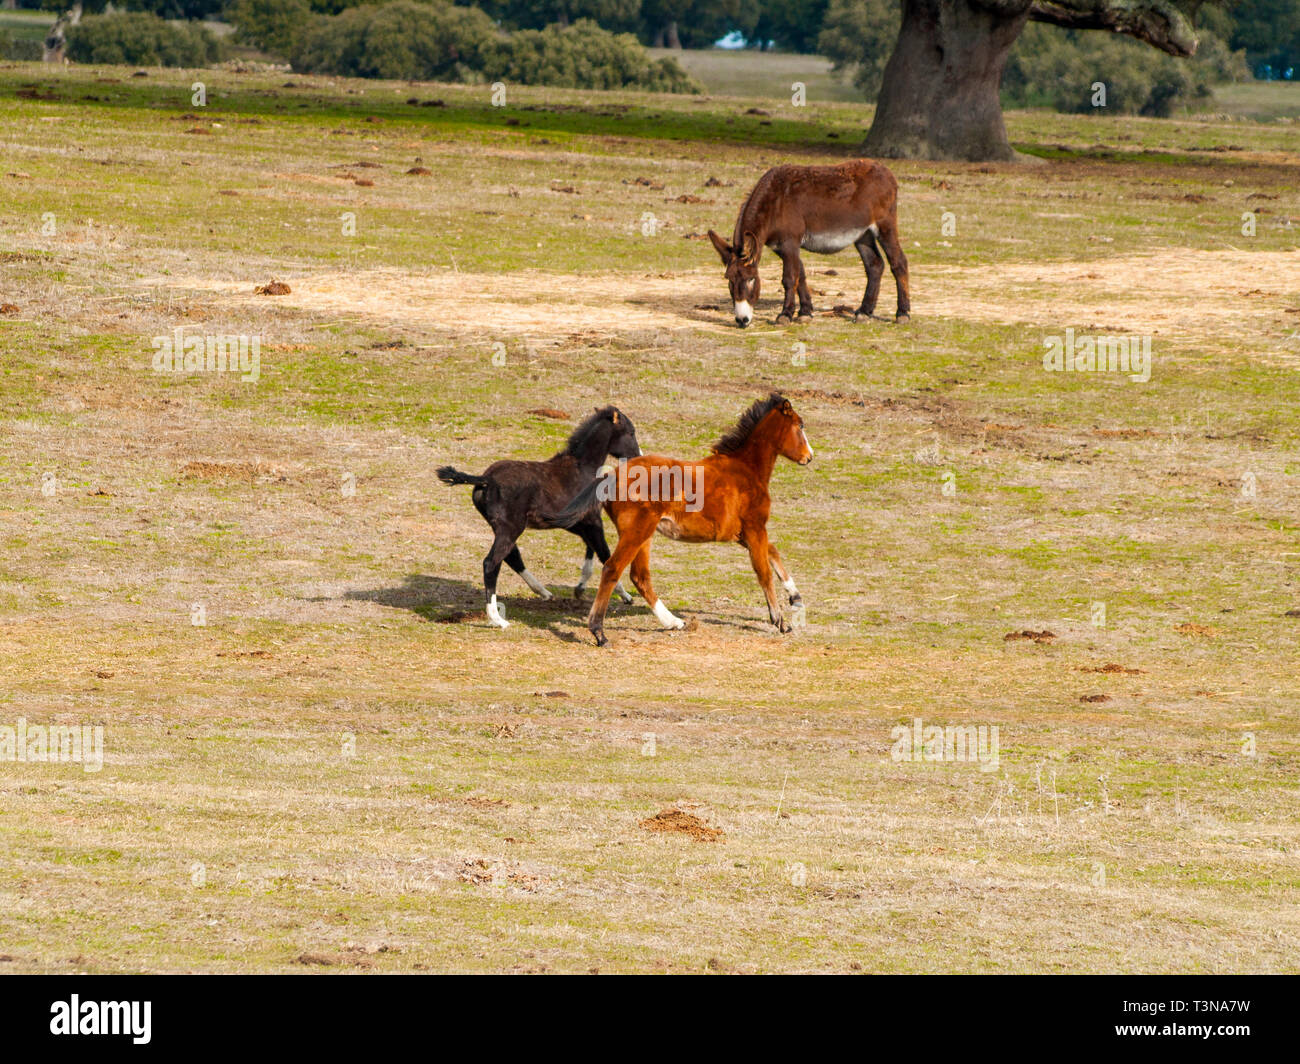 One donkey and a brown horse and a black colt galloping in the dehesa in Salamanca (Spain), Ecological extensive livestock concept. - Stock Image